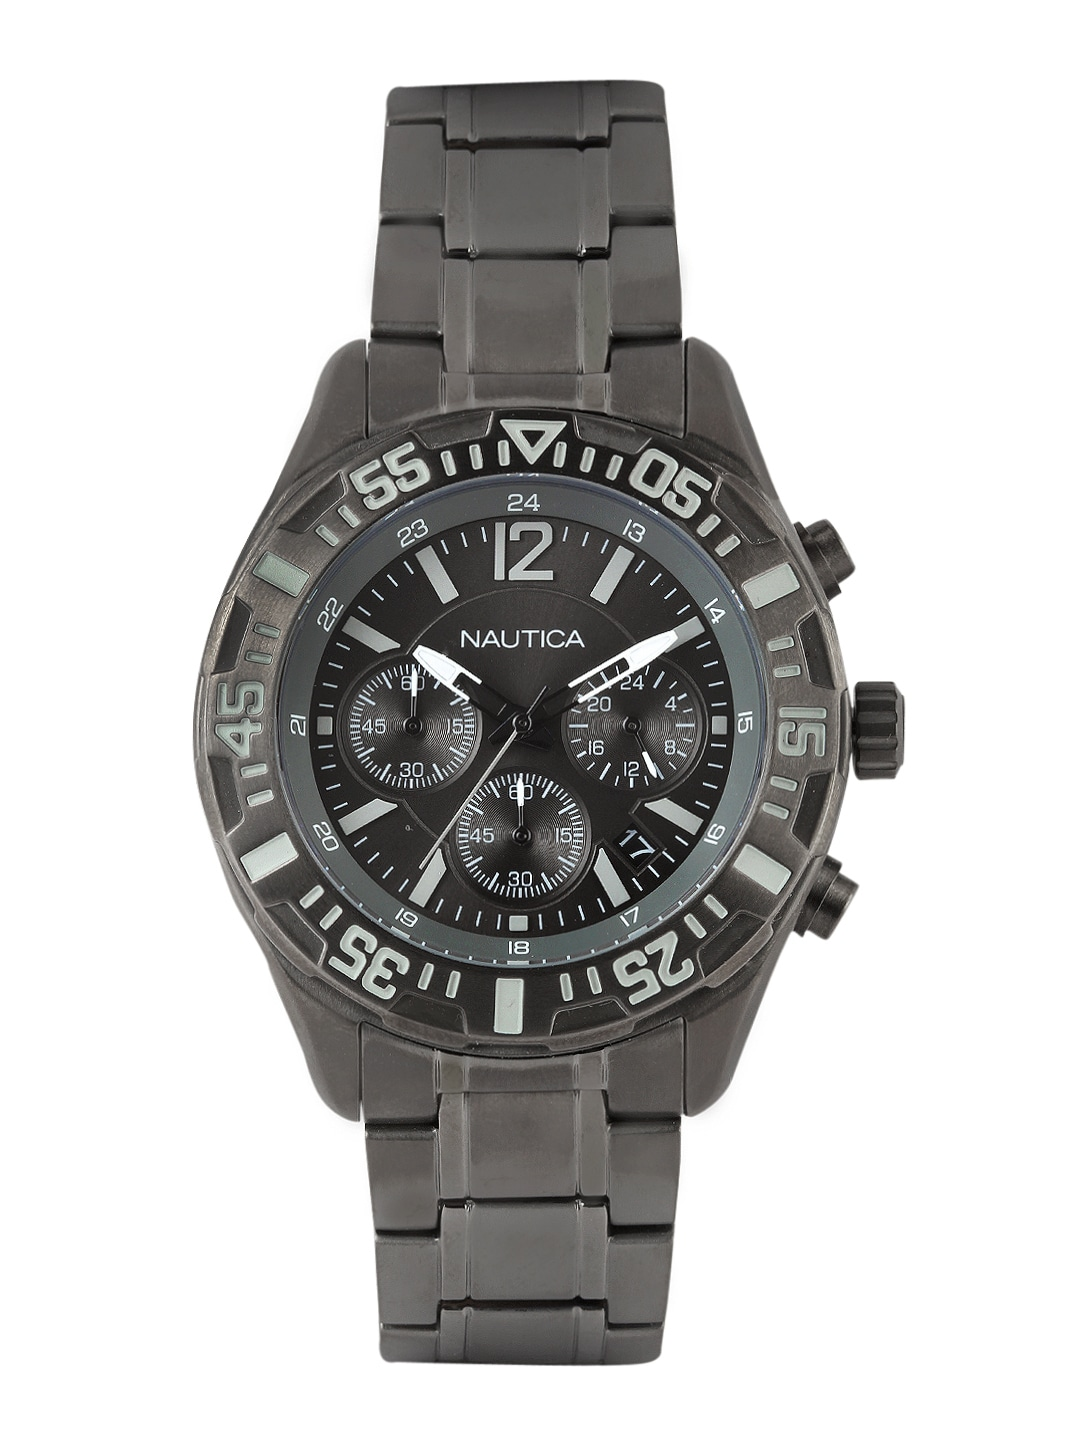 Nautica Nautica Men Gunmetal-Toned Dial Watch NTA22634G (Multicolor)